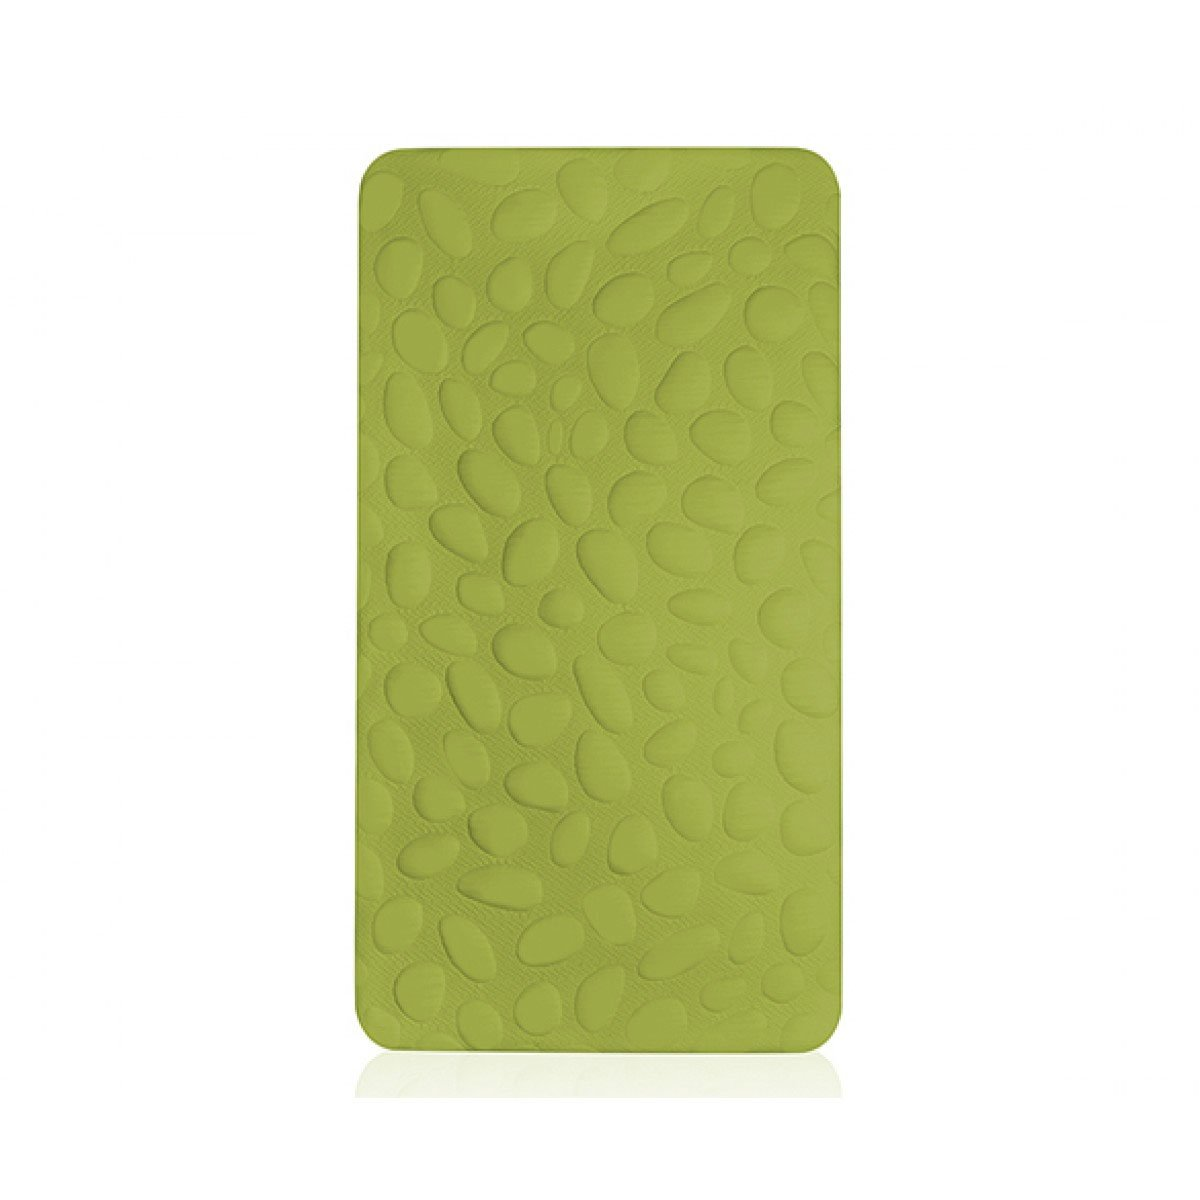 Nook Sleep Pebble Changepad, Lawn